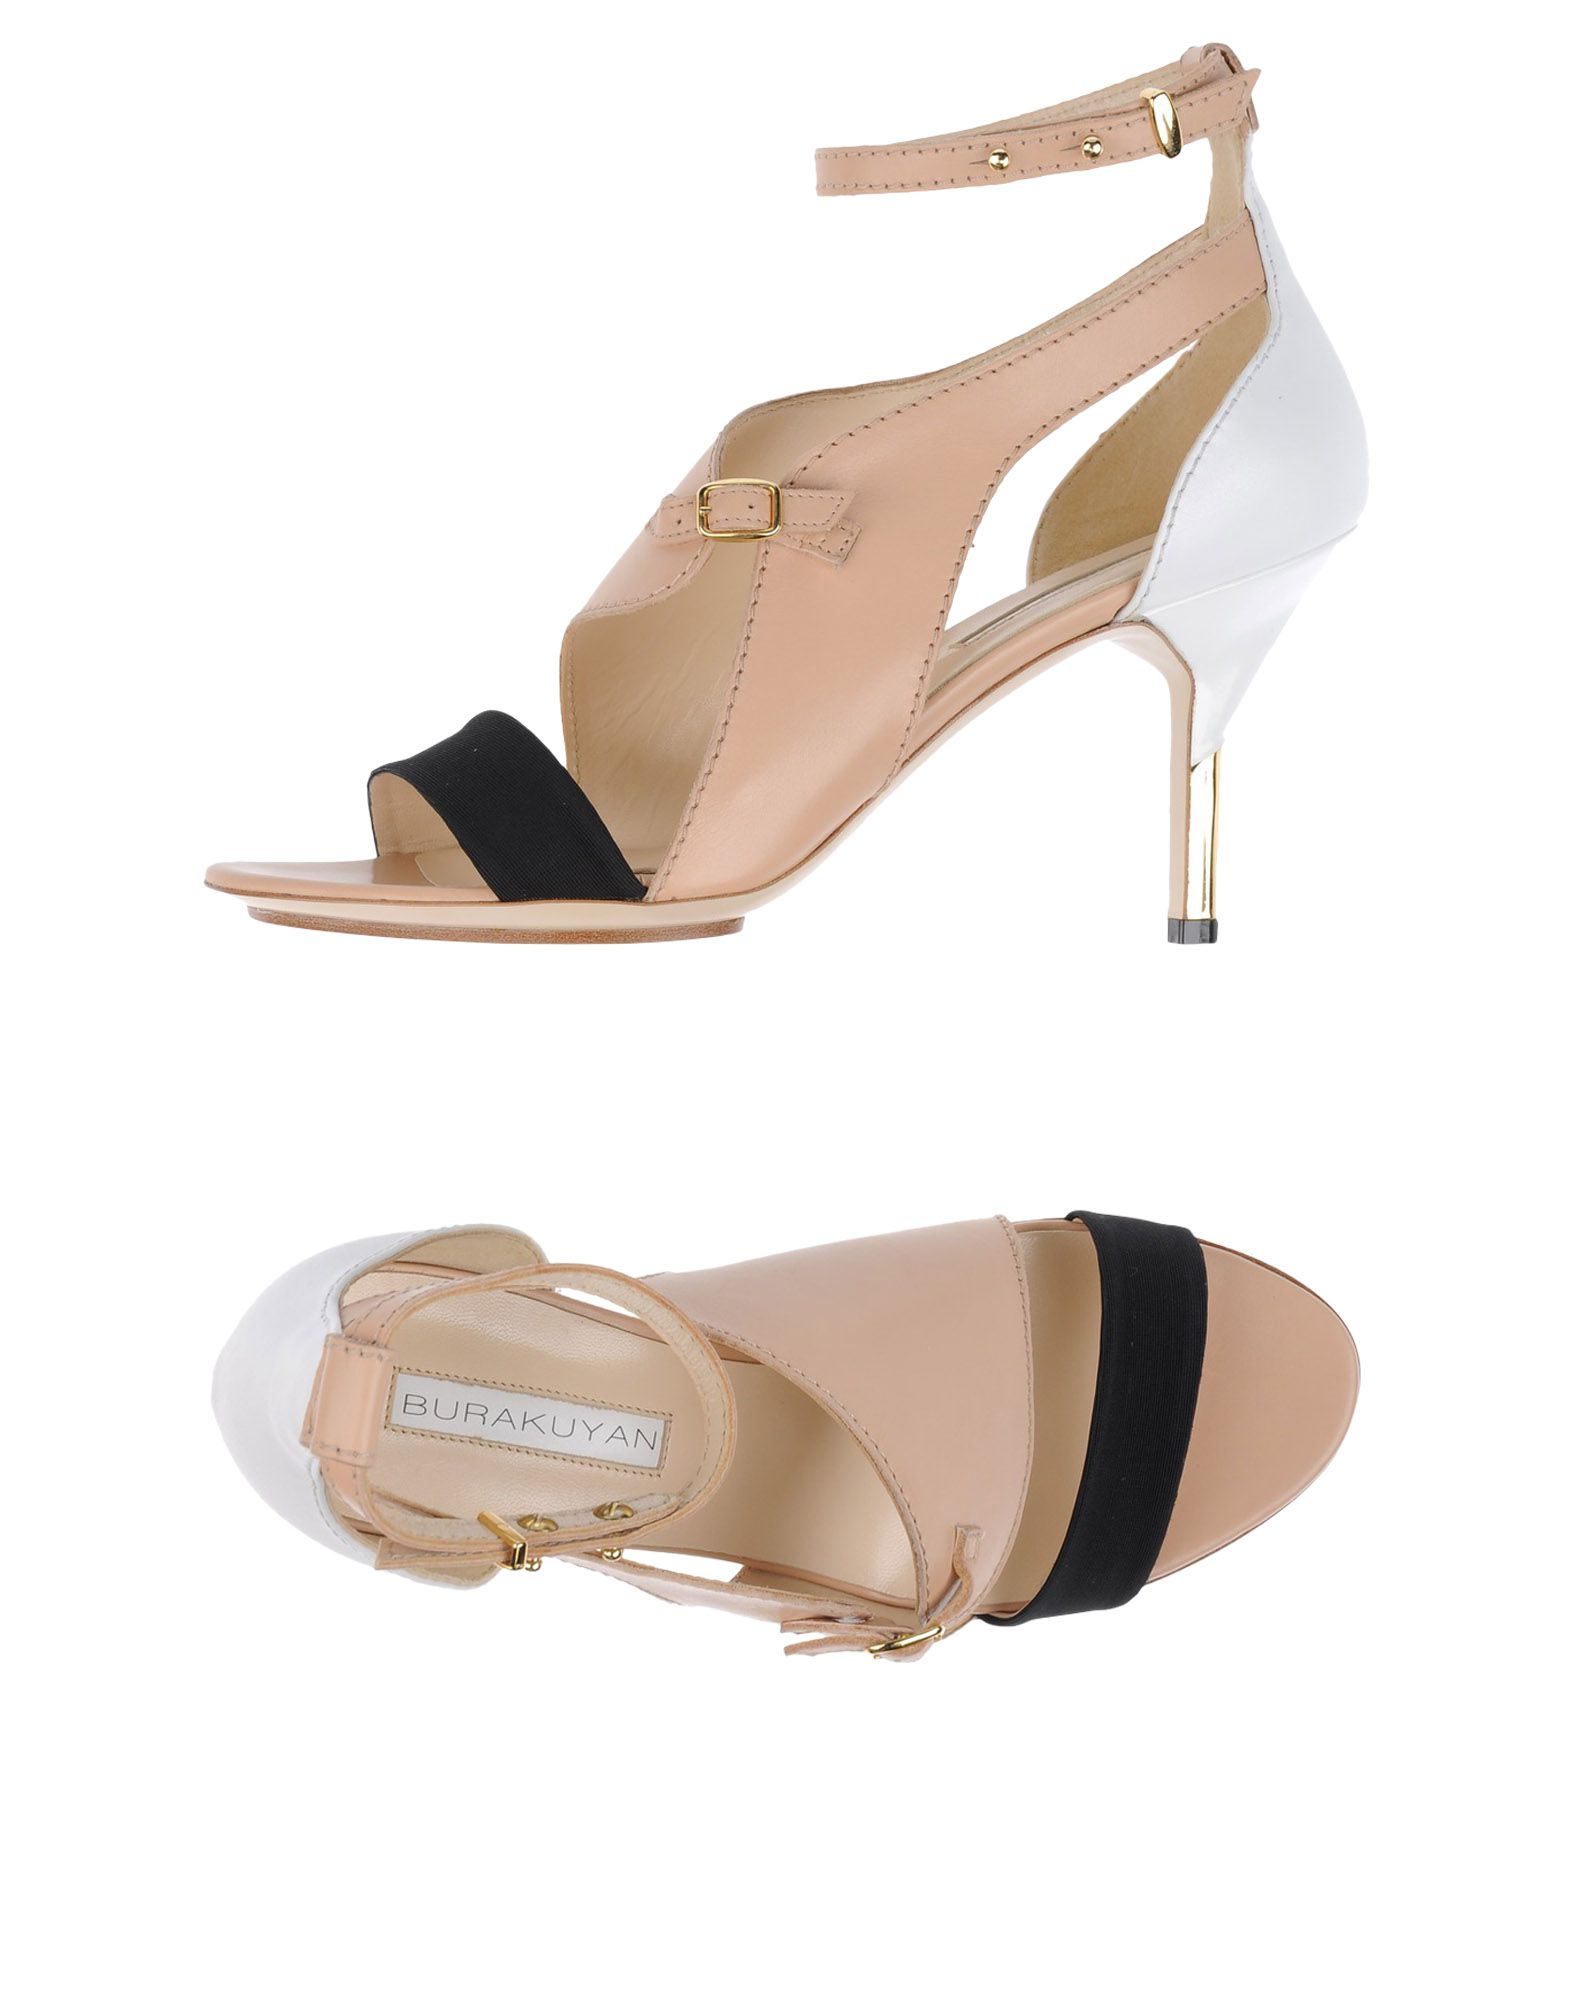 BURAK UYAN Sandals in Pale Pink